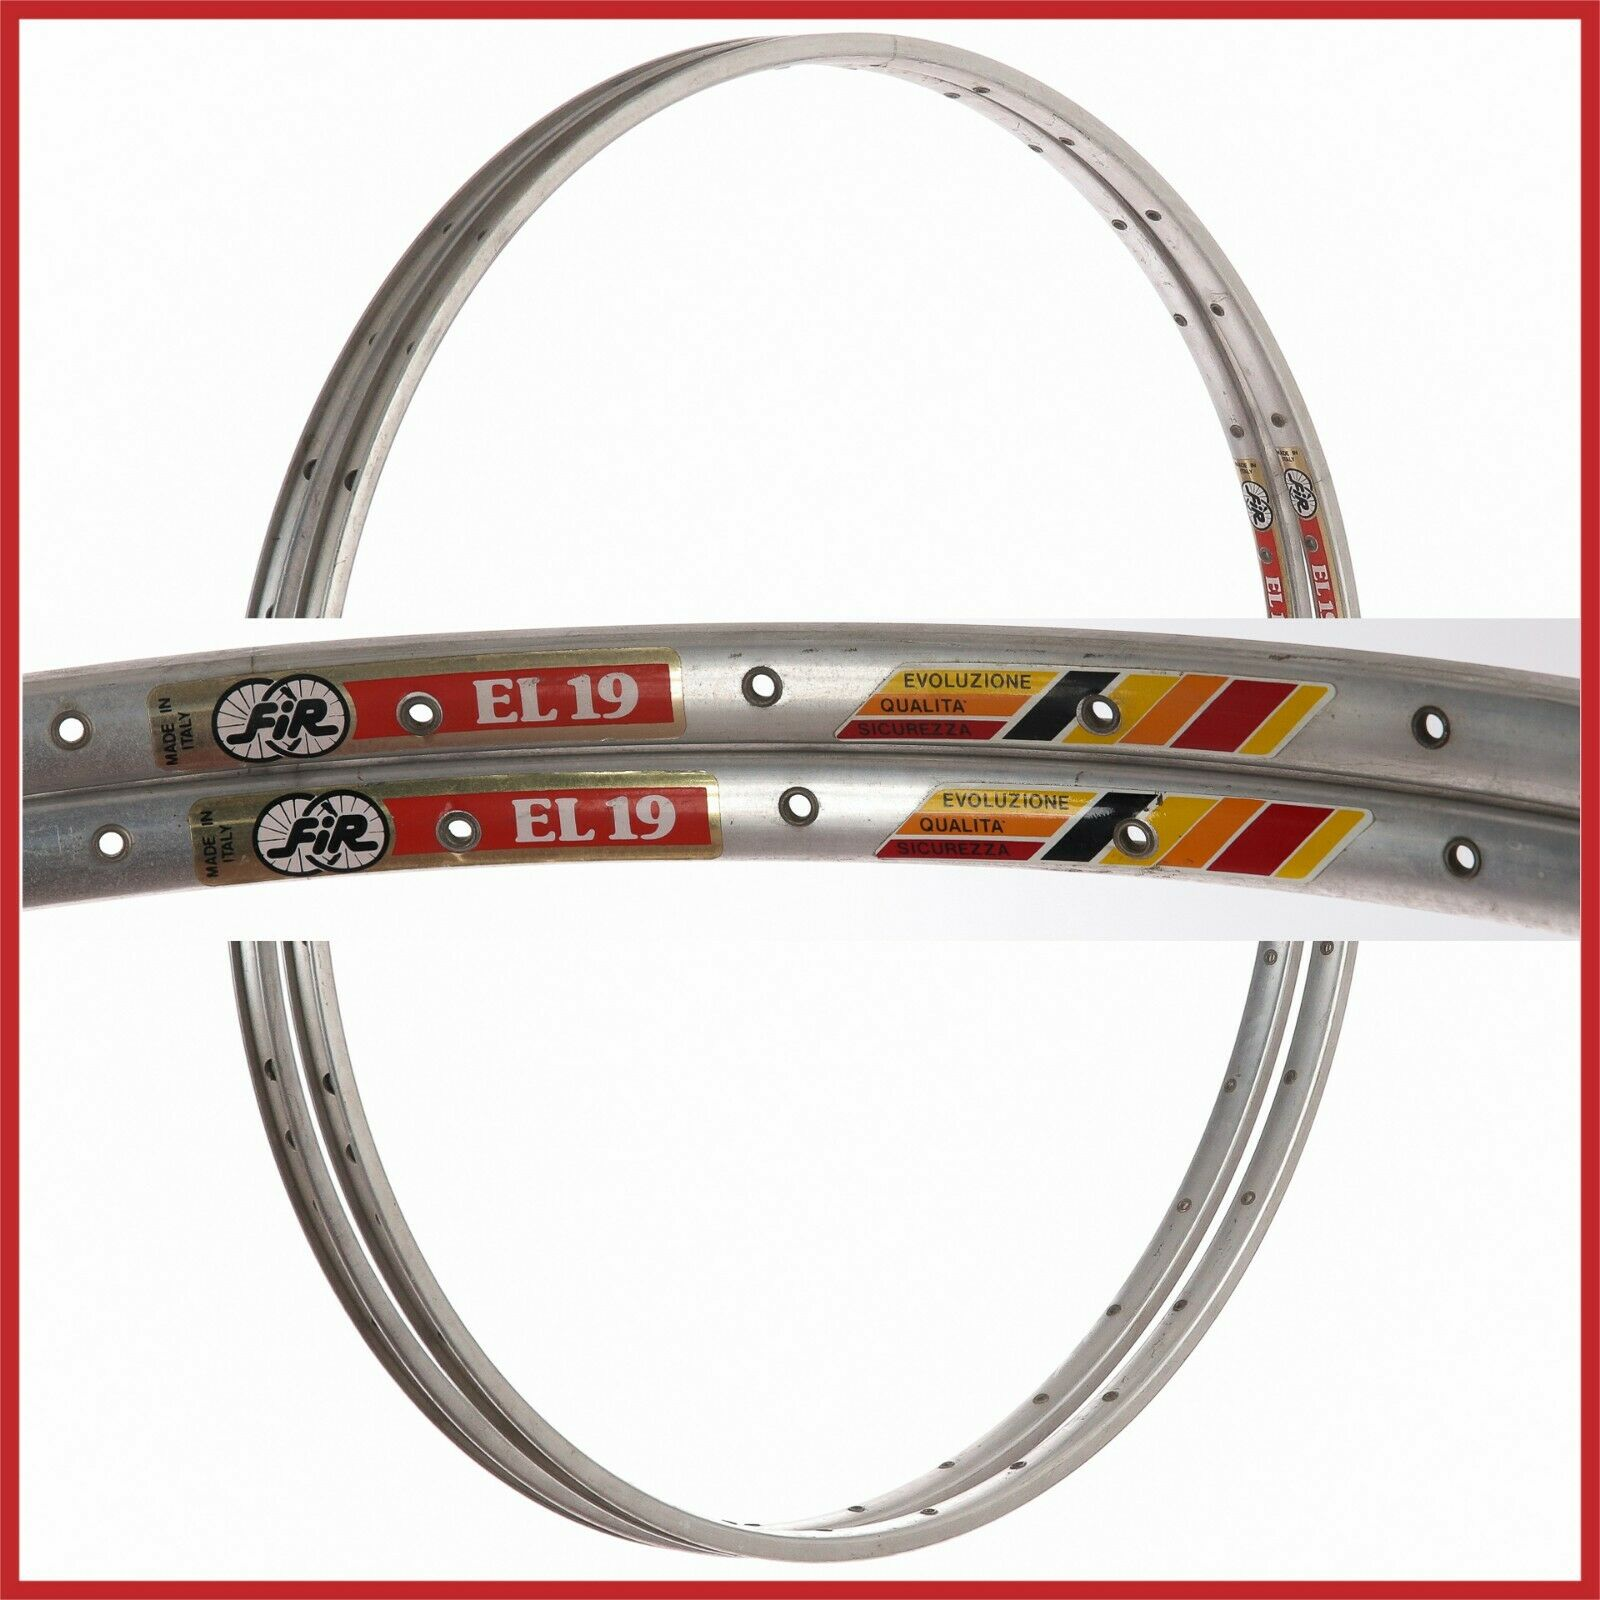 NOS FIR EL19 RIMS 28  700c 32H VINTAGE CLINCHERS 80s ROAD RACING BIKE EL 19 NEW